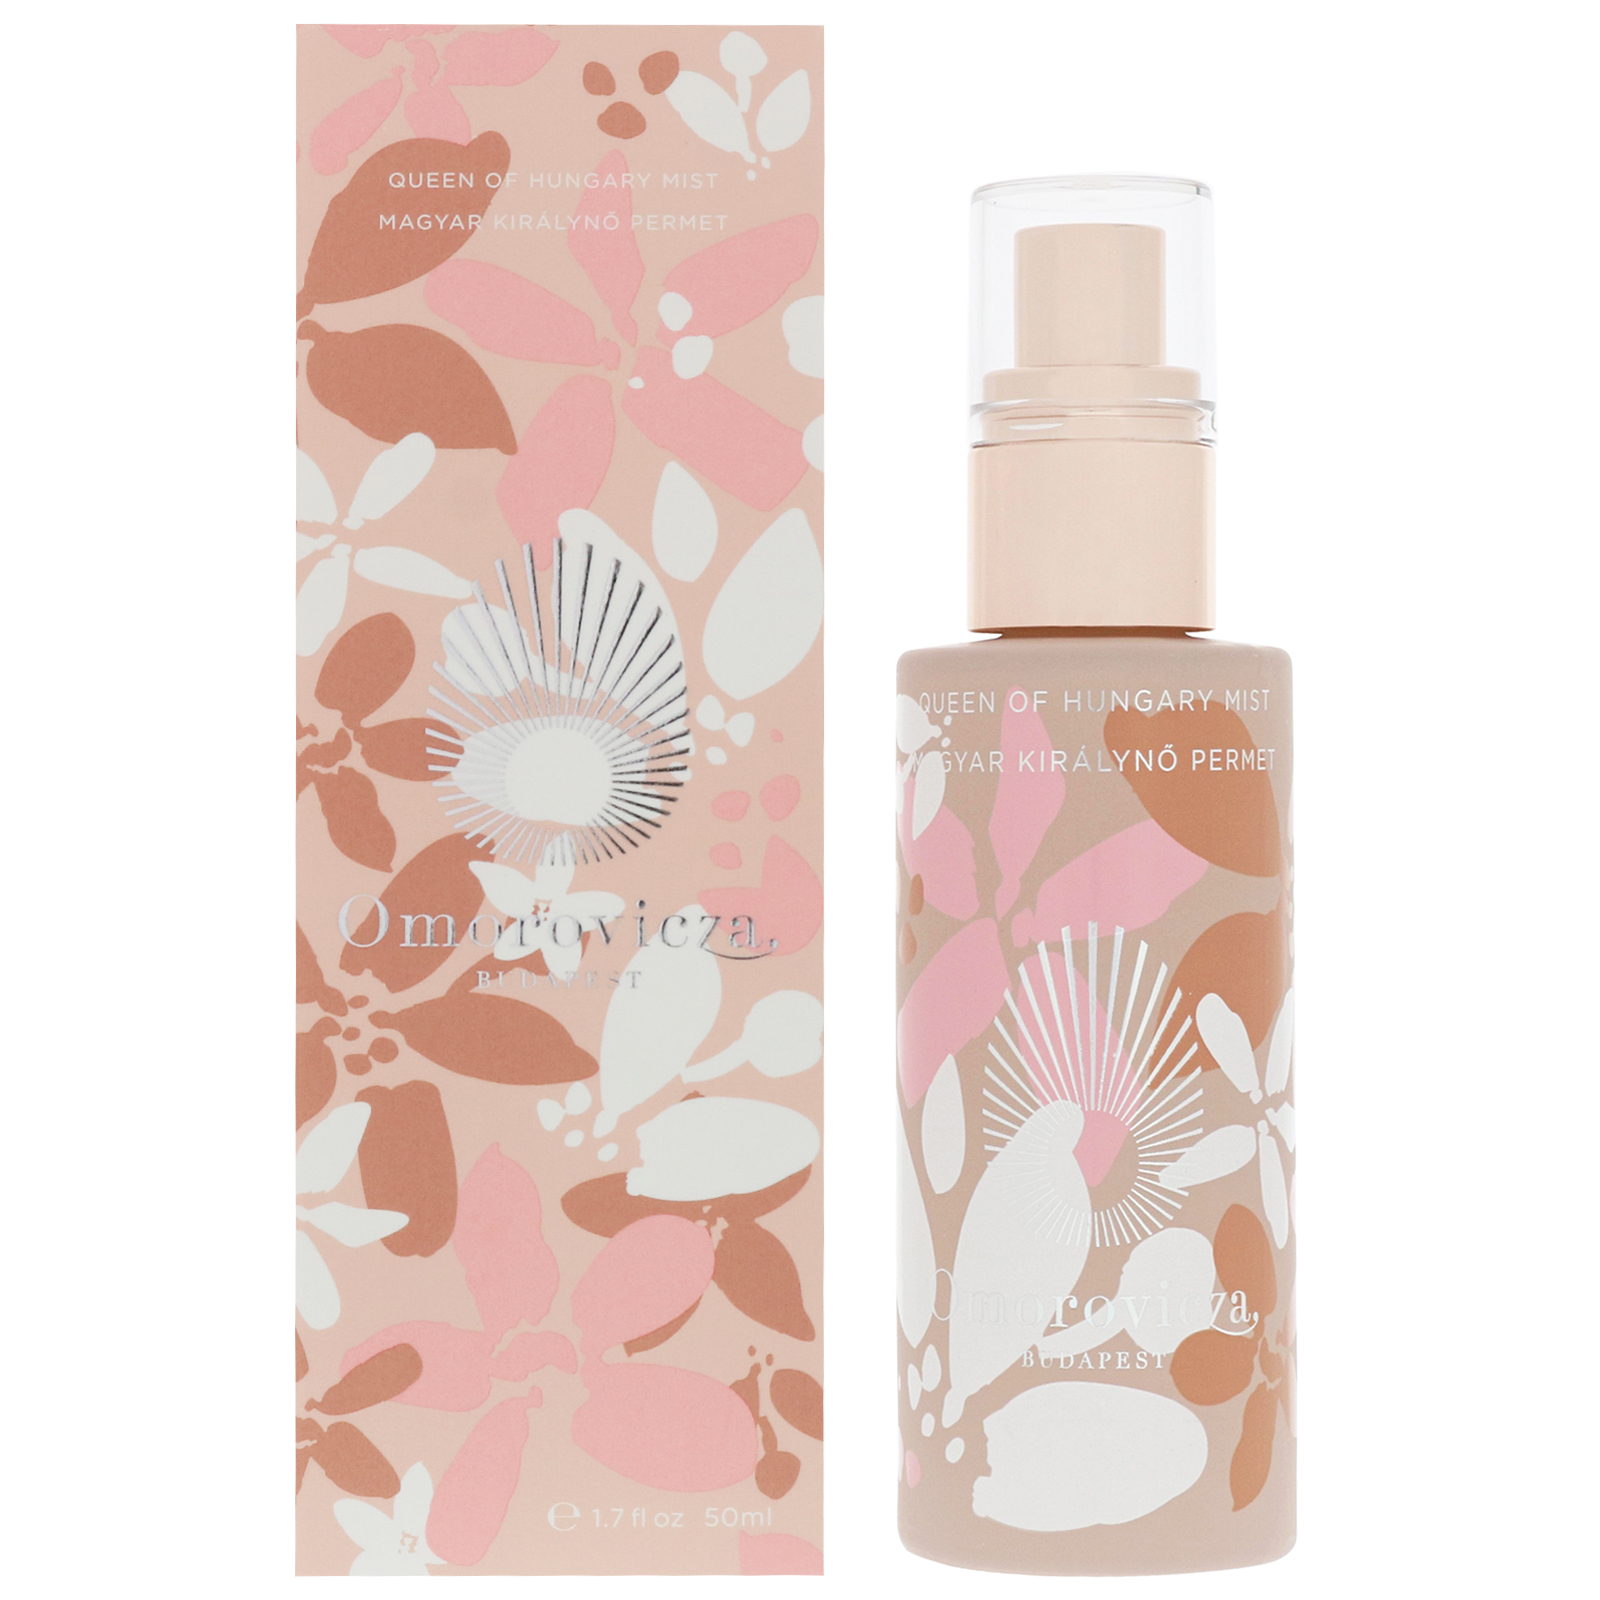 Queen of Hungary Mist Limited Edition 2020